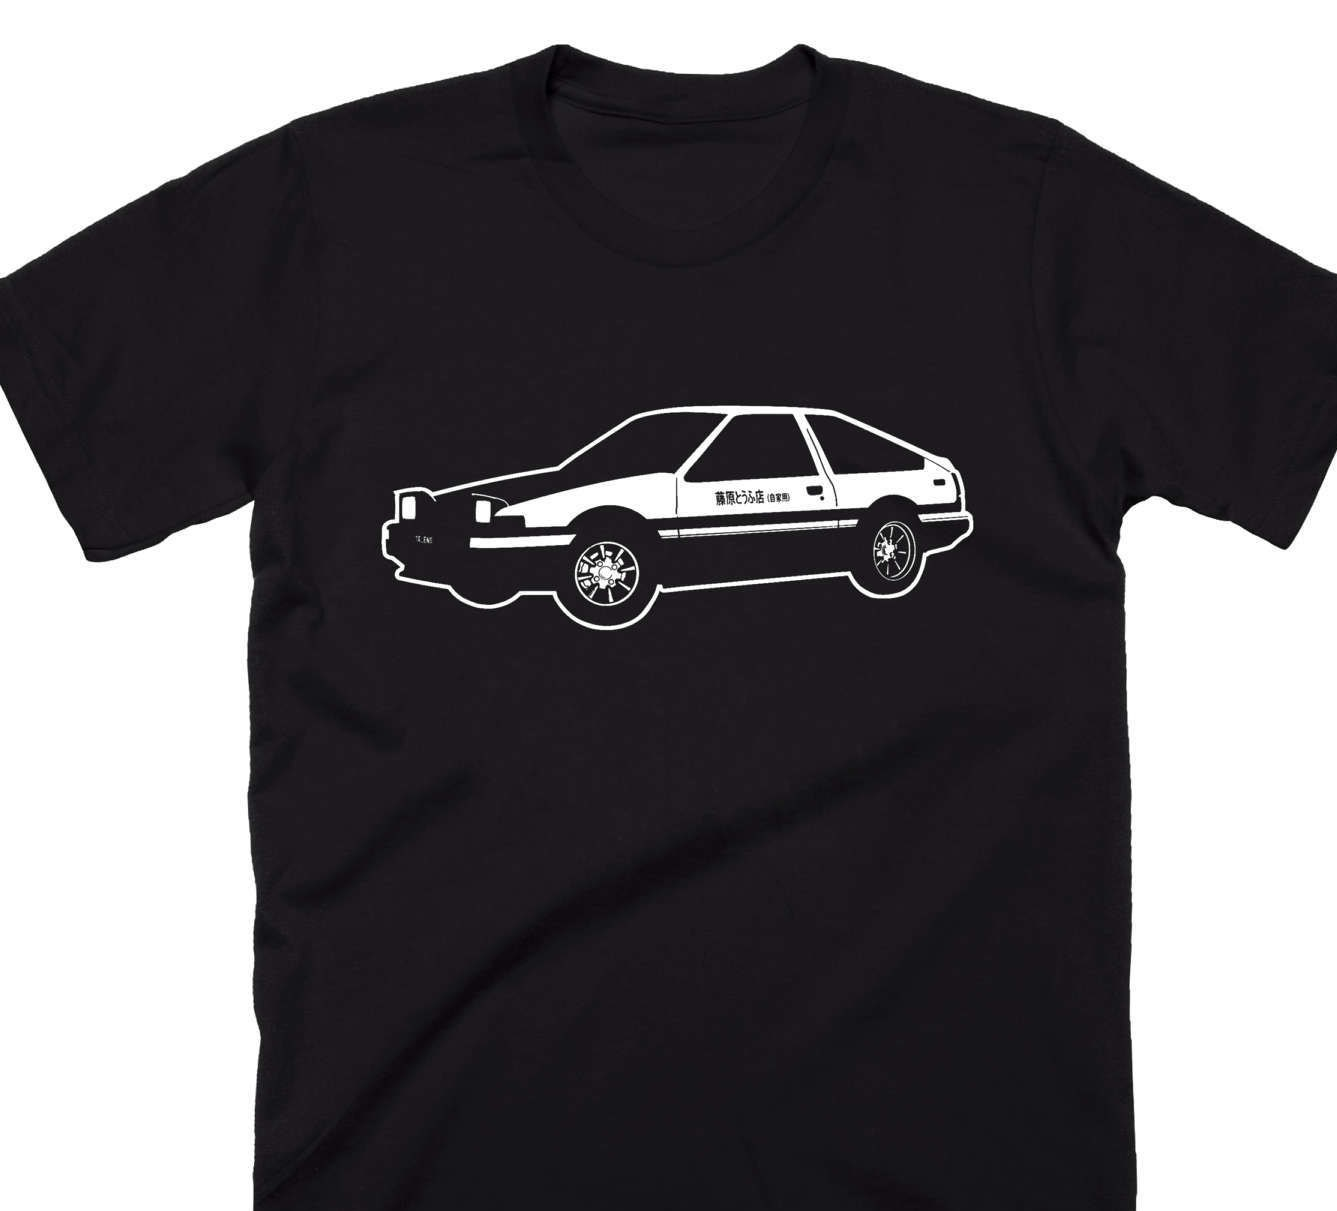 Initial D Shirt Toyota AE86 TRUENO Japanese Writing Japan